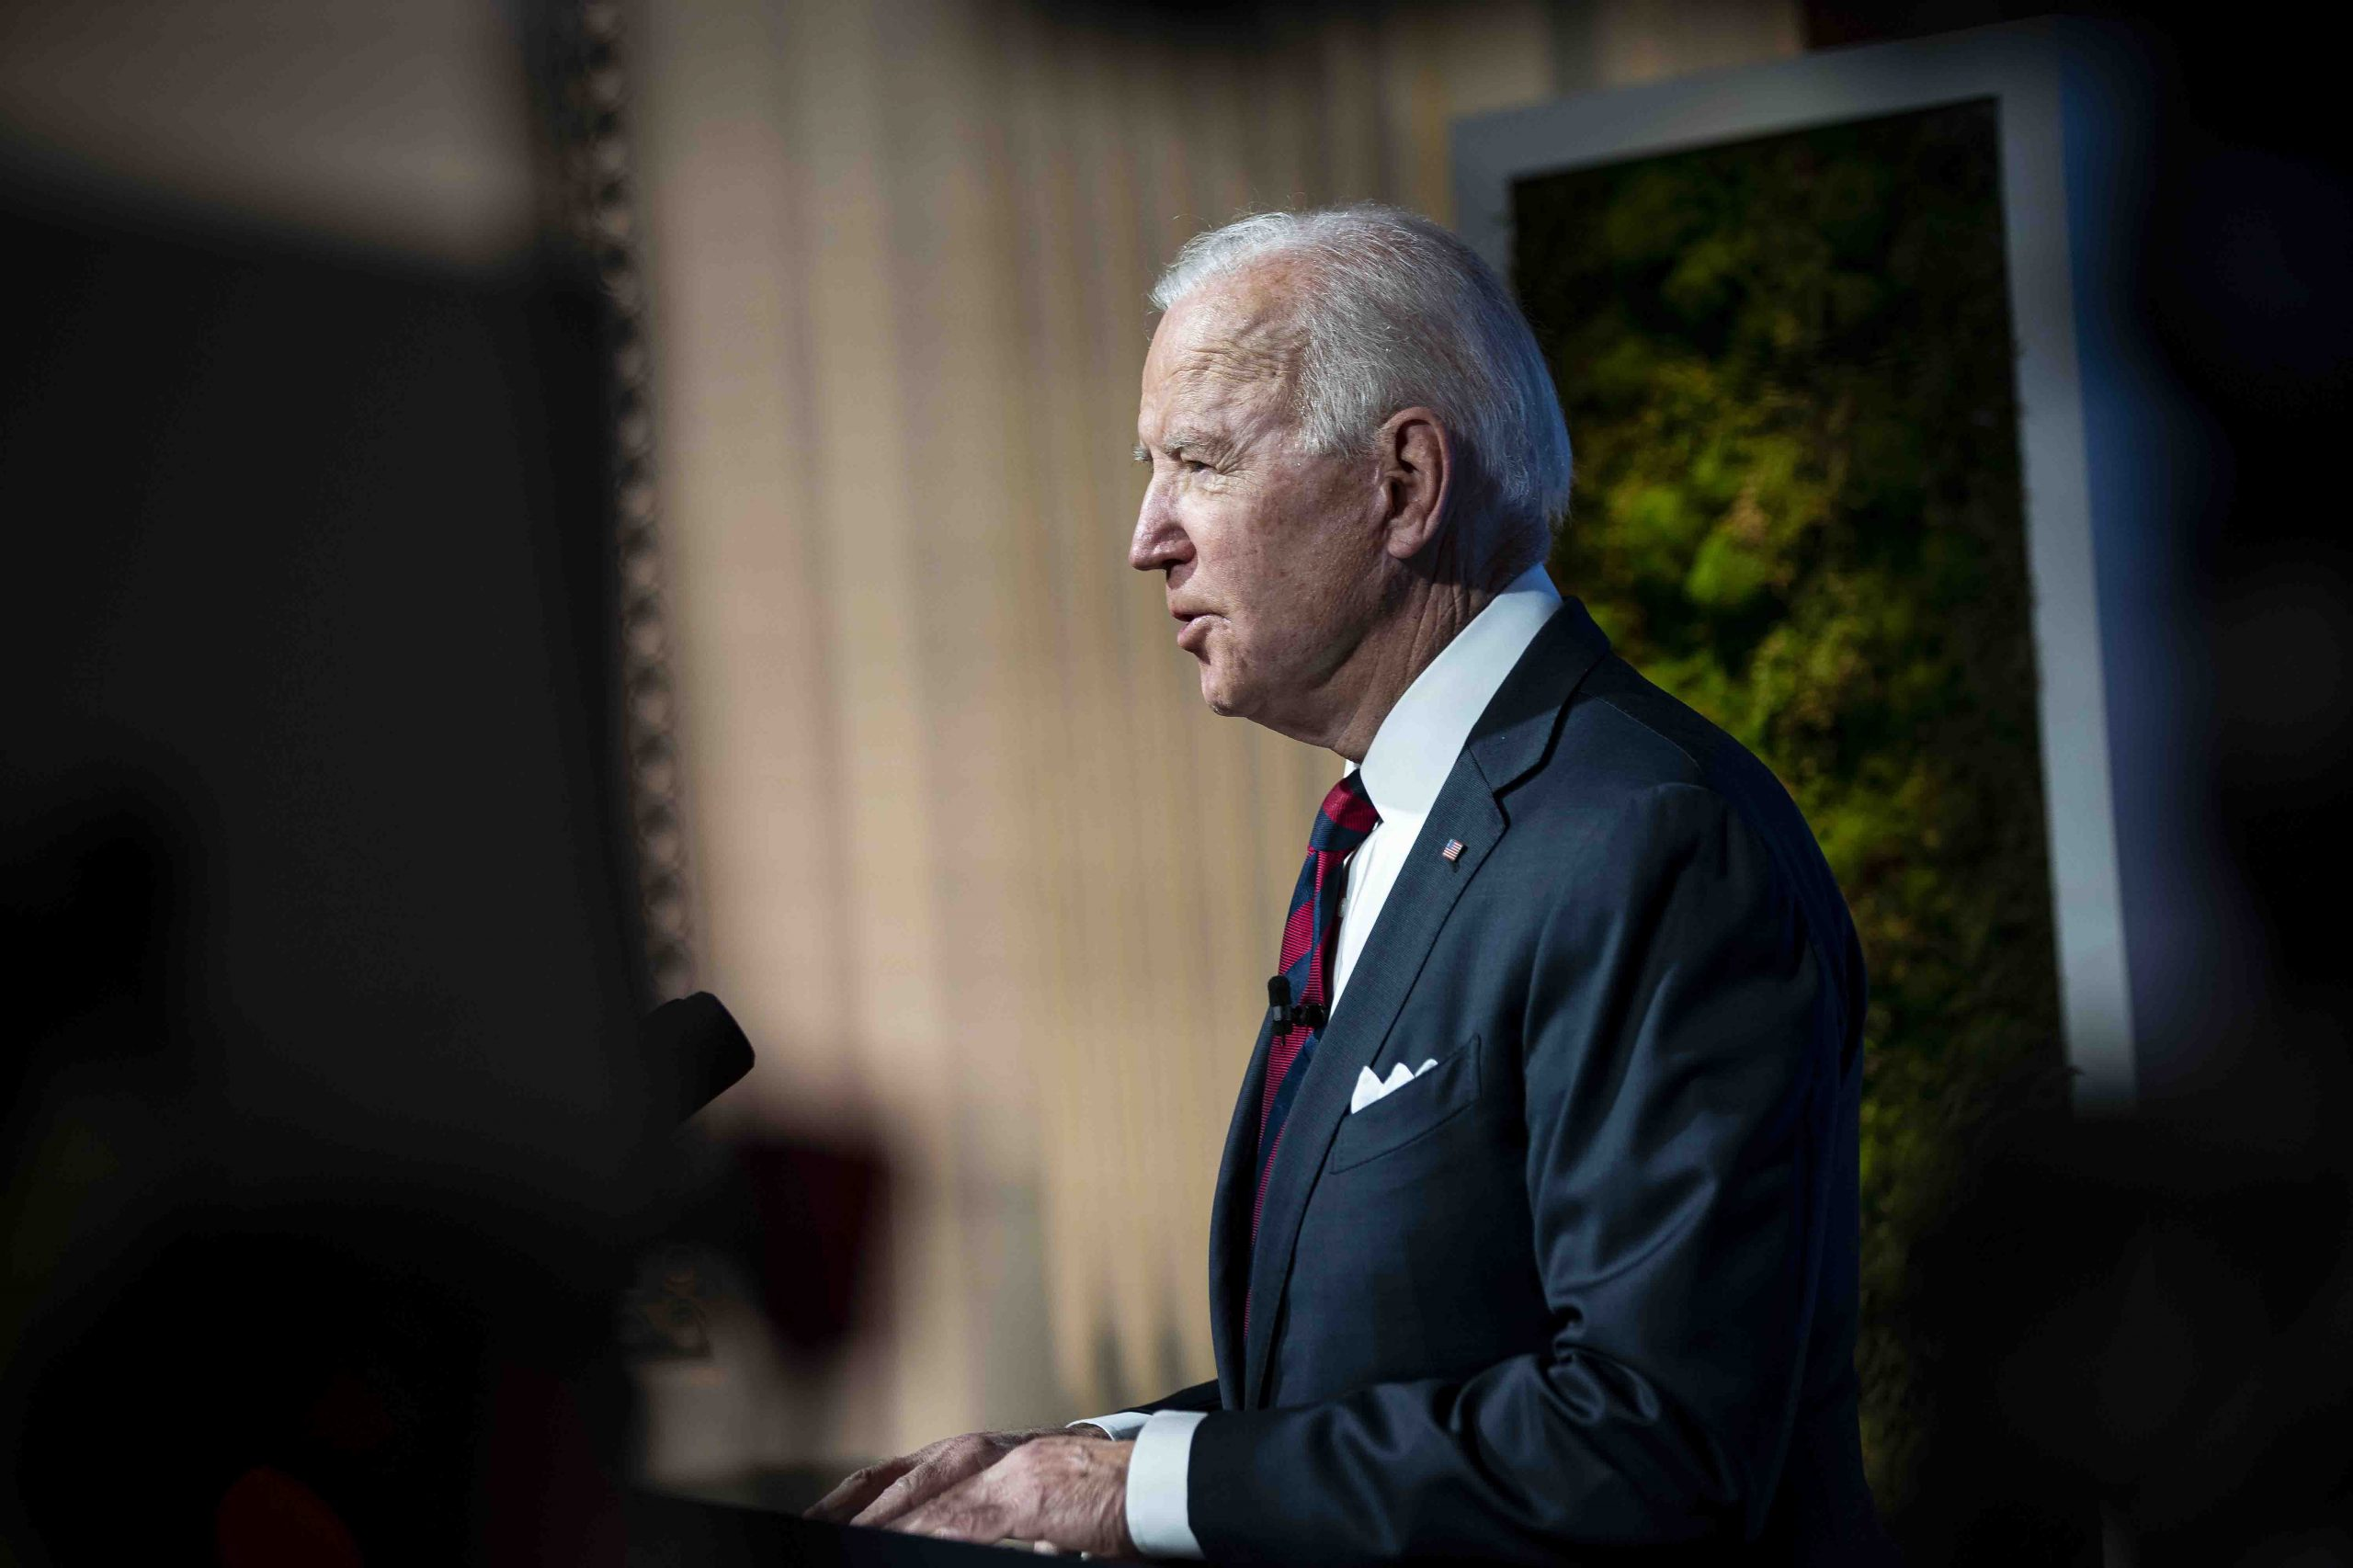 Biden to make first overseas trip in June for G-7, NATO summits